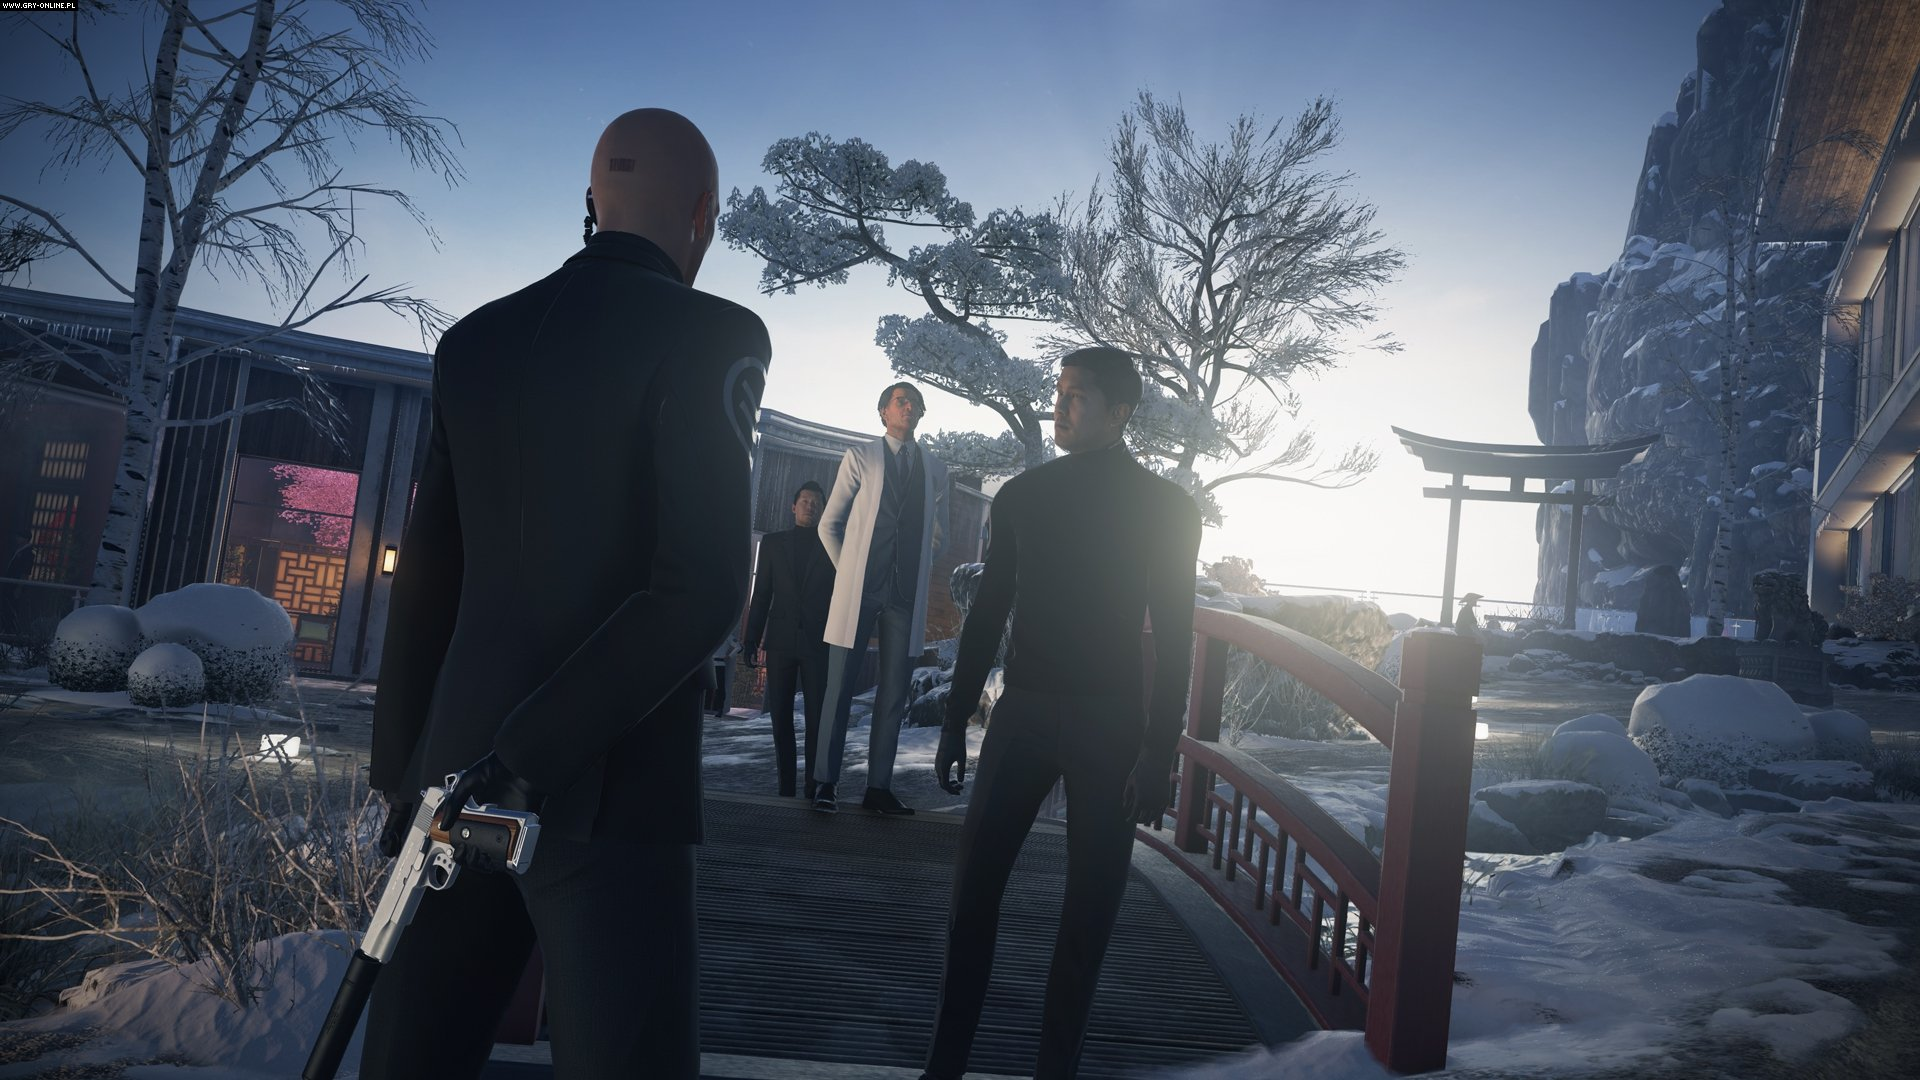 Hitman PC, PS4, XONE Games Image 6/63, IO Interactive, Square-Enix / Eidos